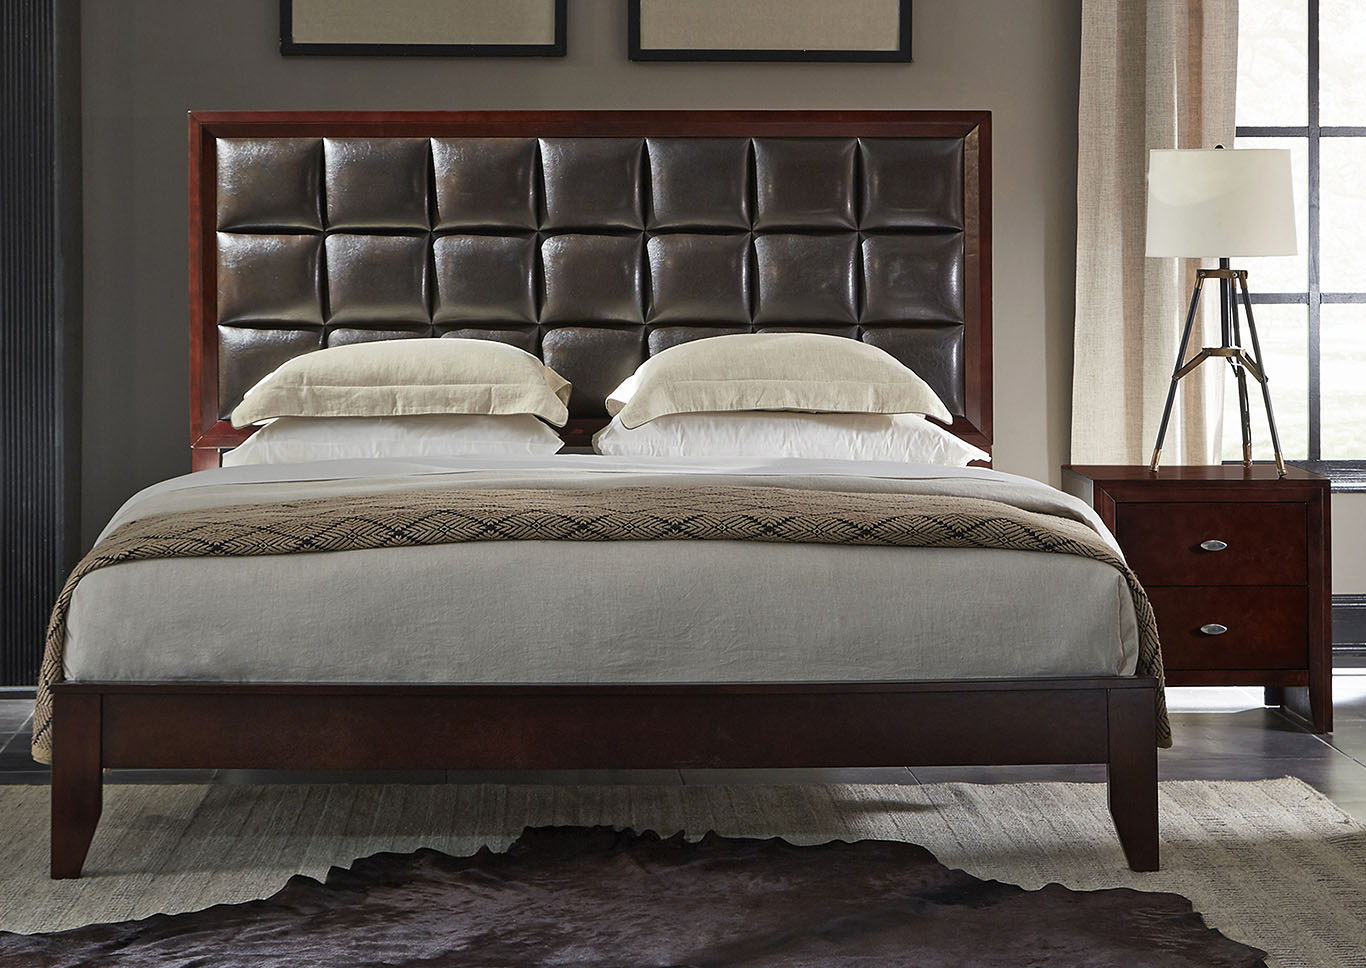 Carolina Cherry/Brown Upholstered Platform King Bed,Global Furniture USA